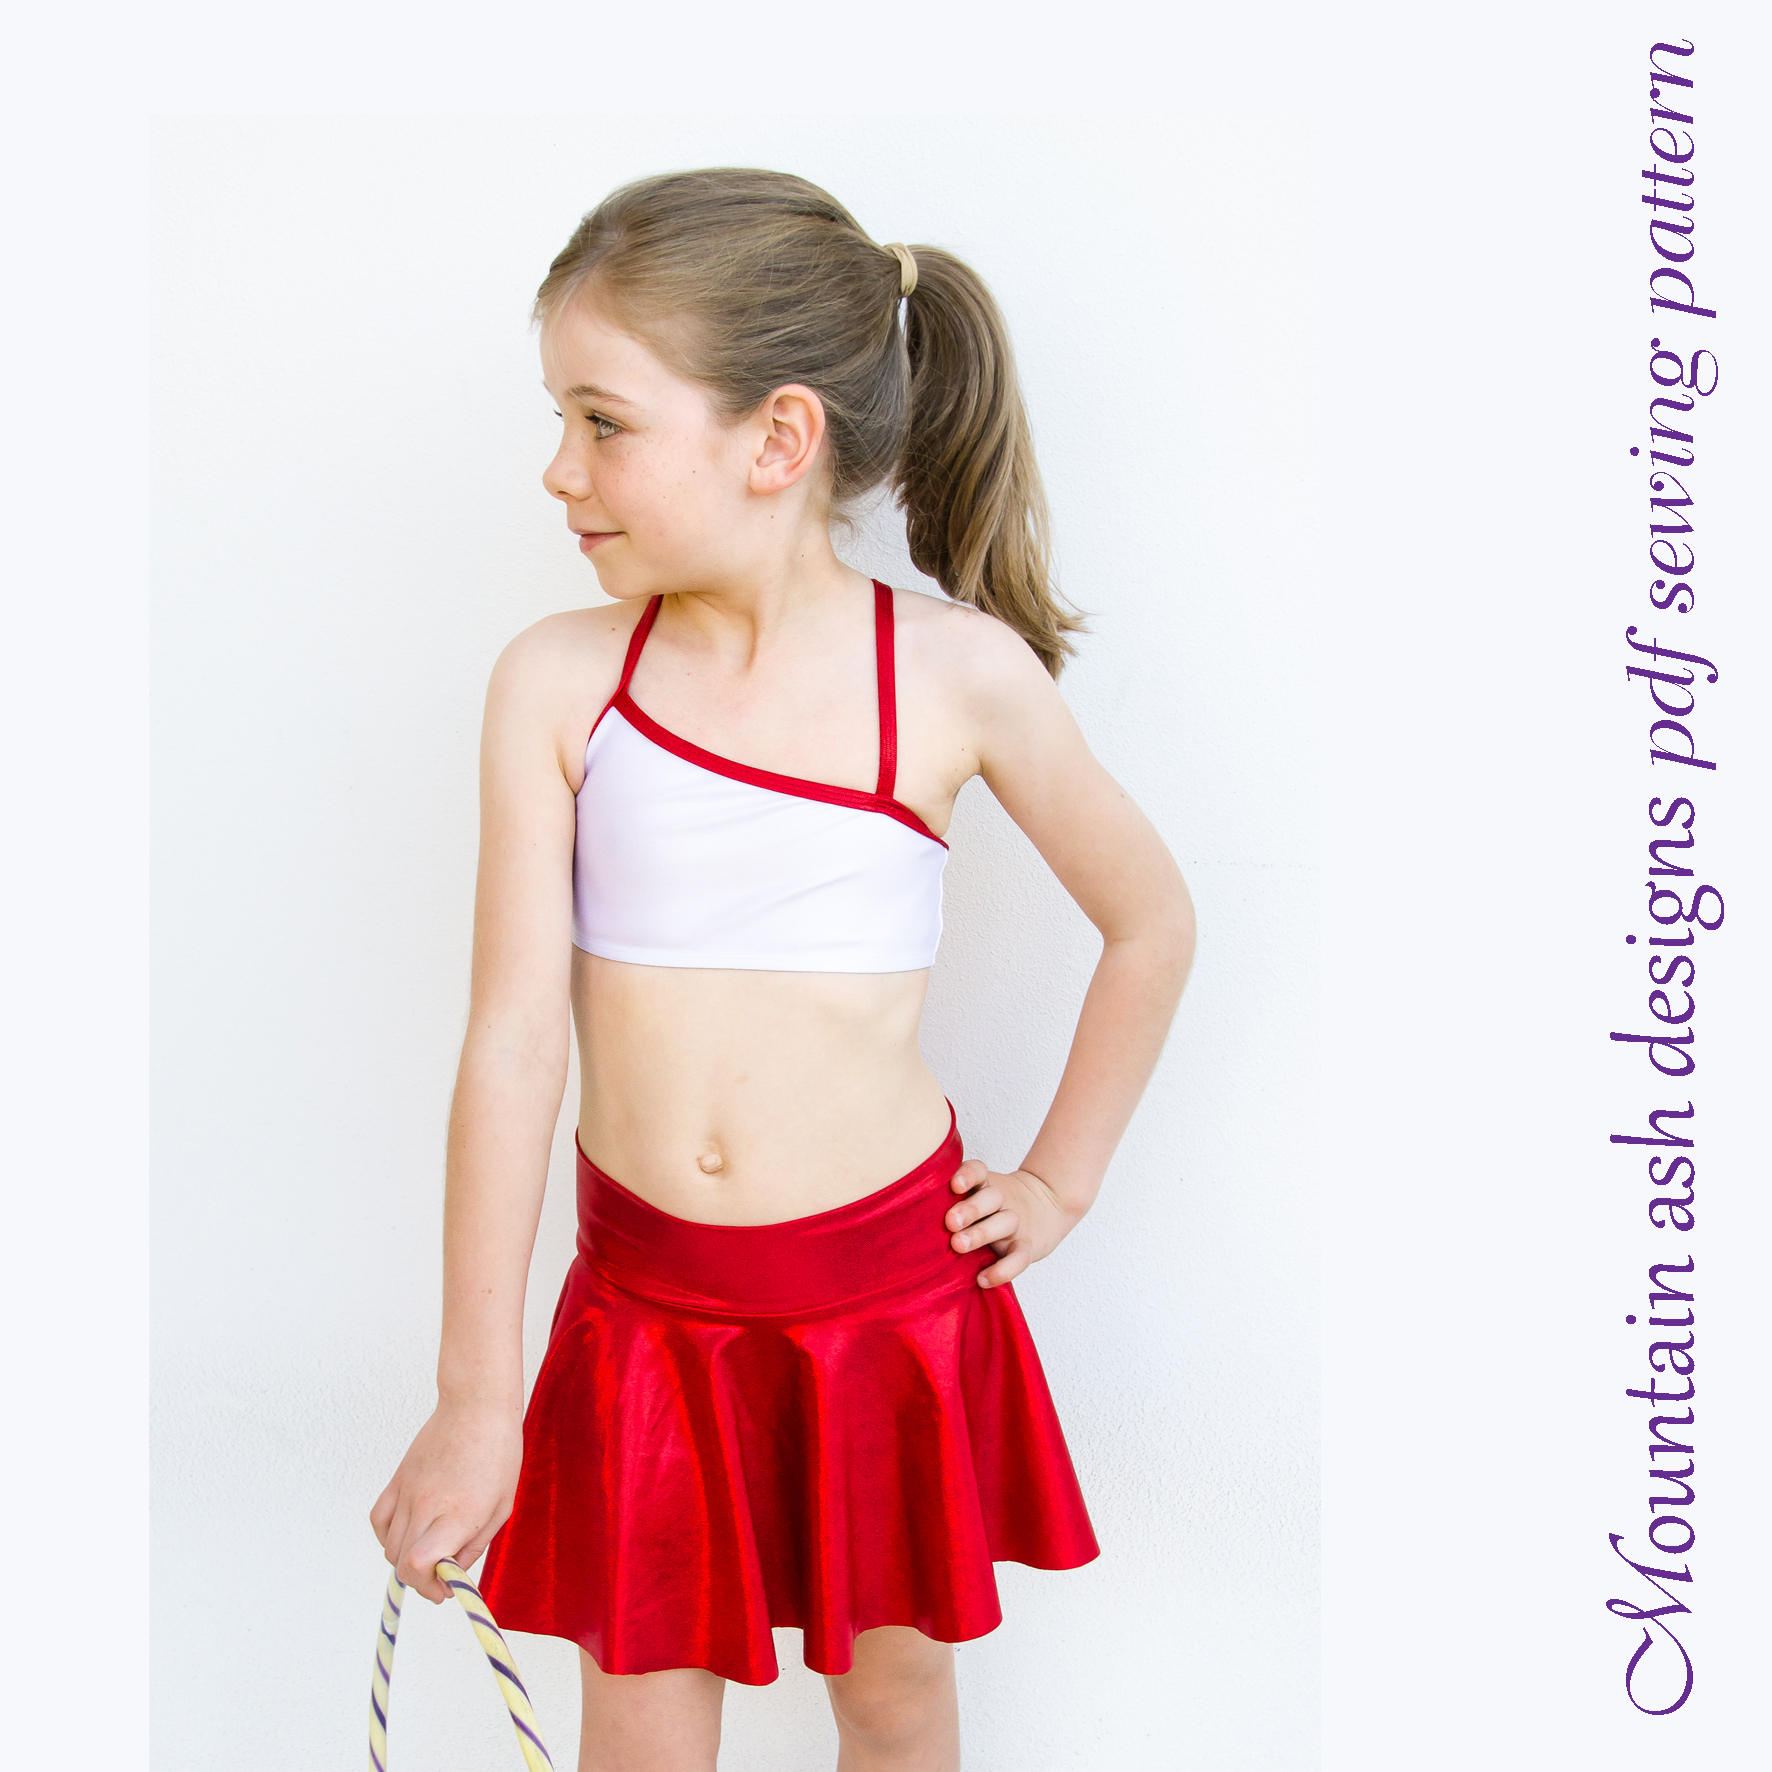 Gymnastics and Dance Tops 1 in Girls Sizes 2-14